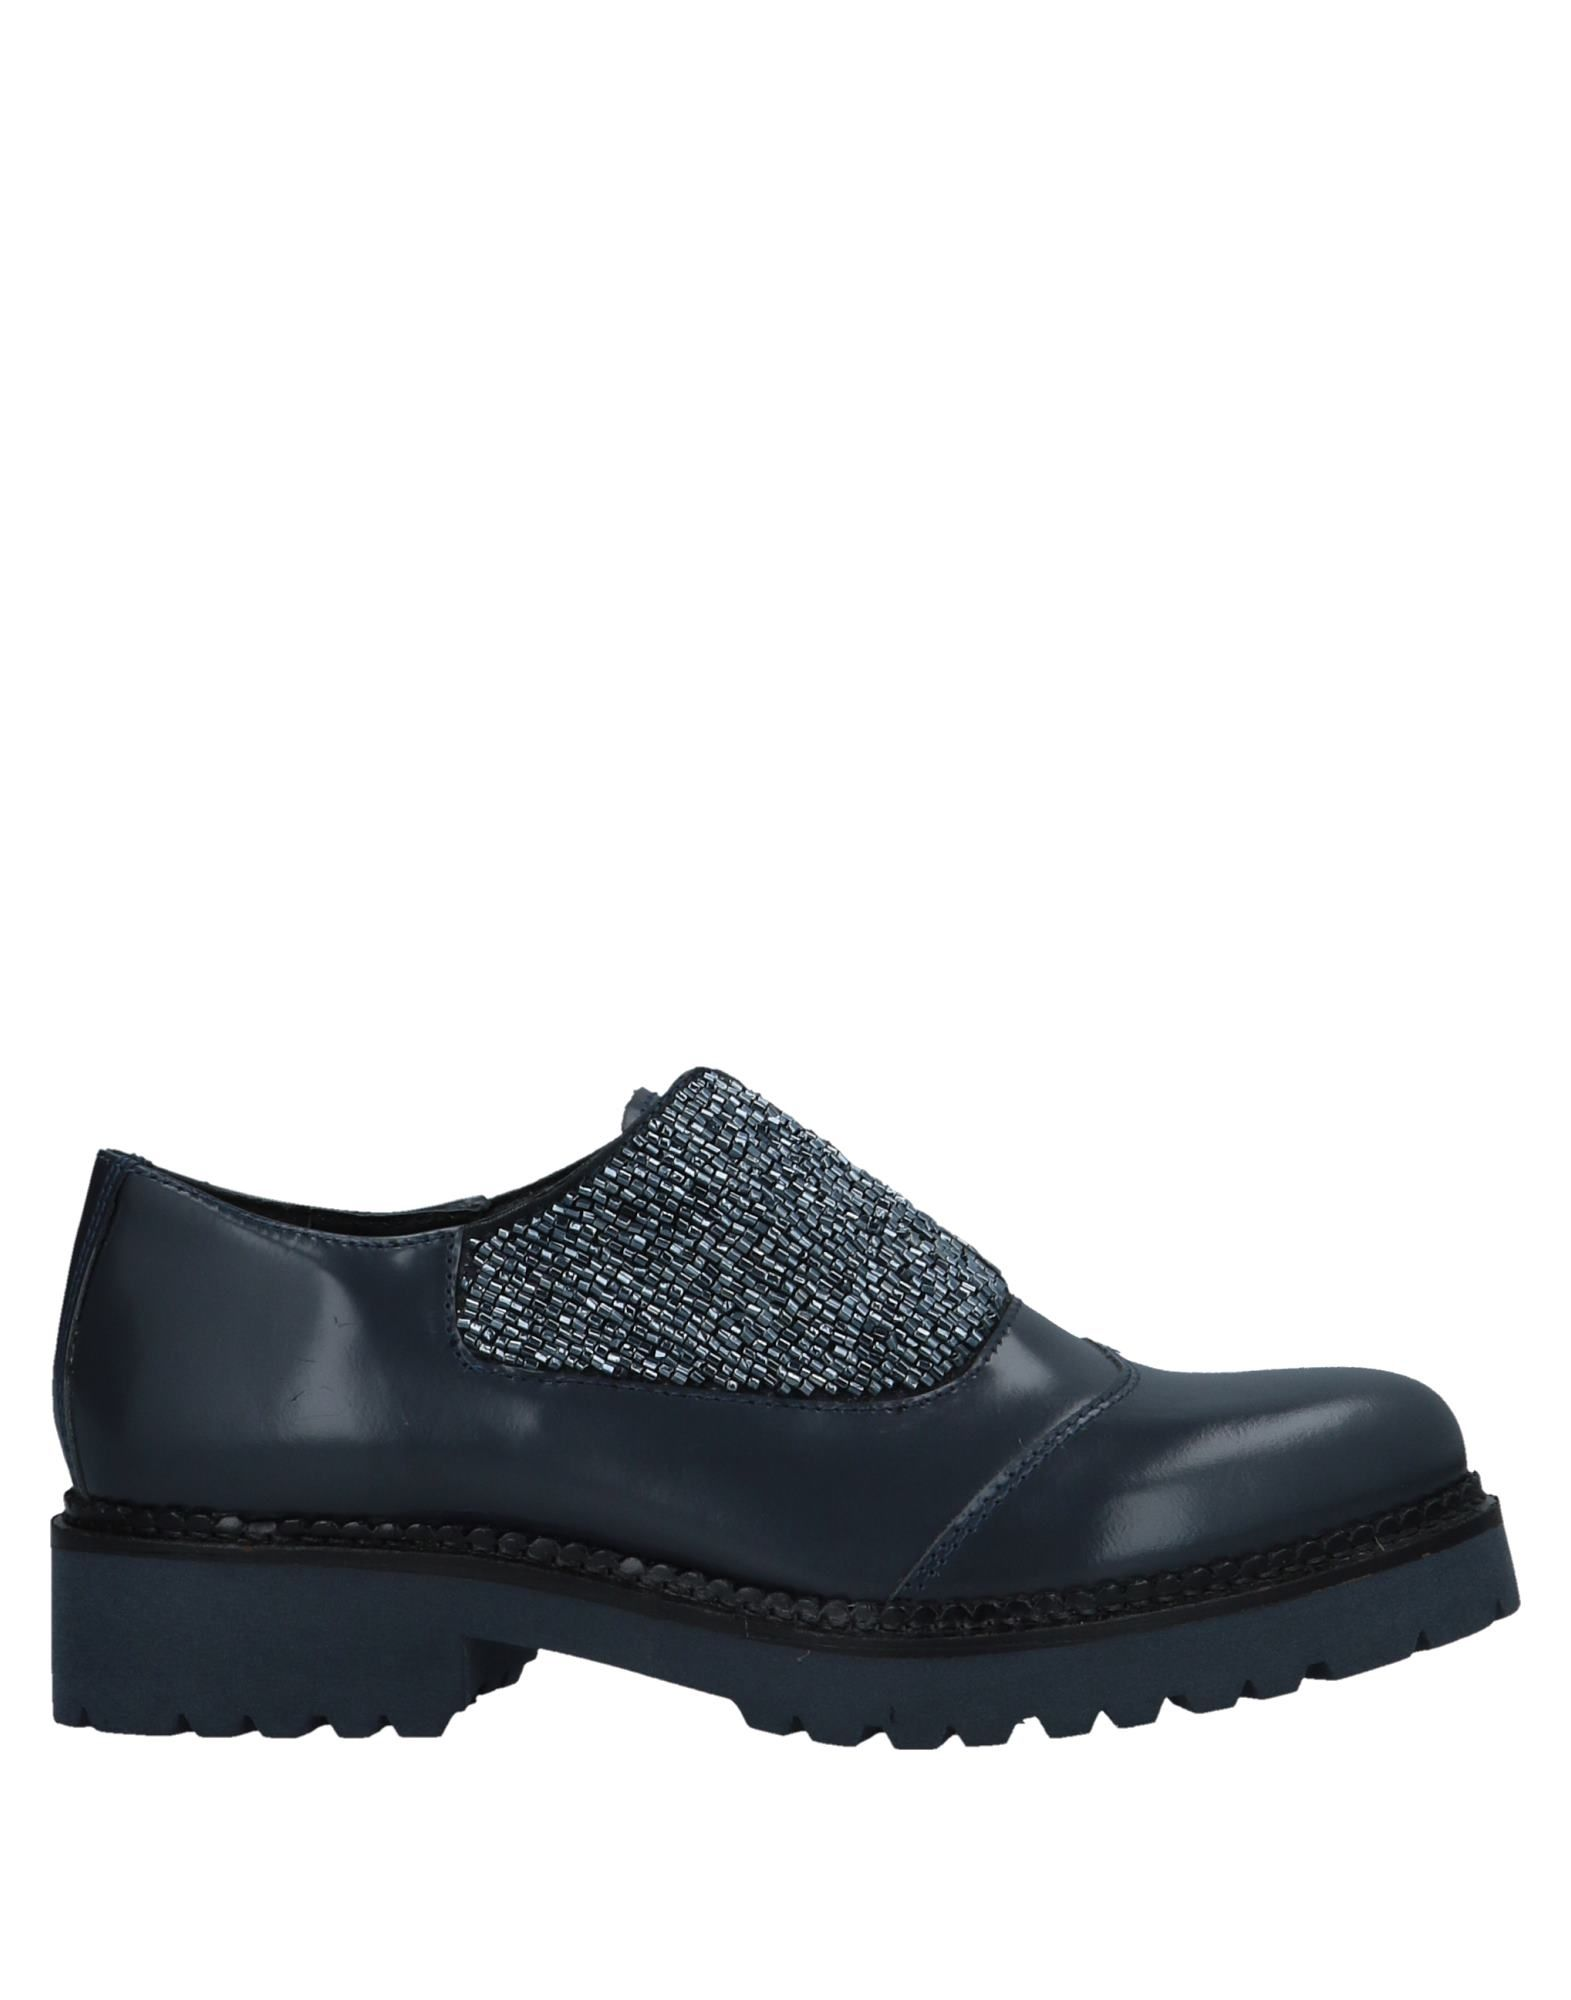 Apepazza Loafers - Women Apepazza Australia Loafers online on  Australia Apepazza - 11509232FO 2a3df0